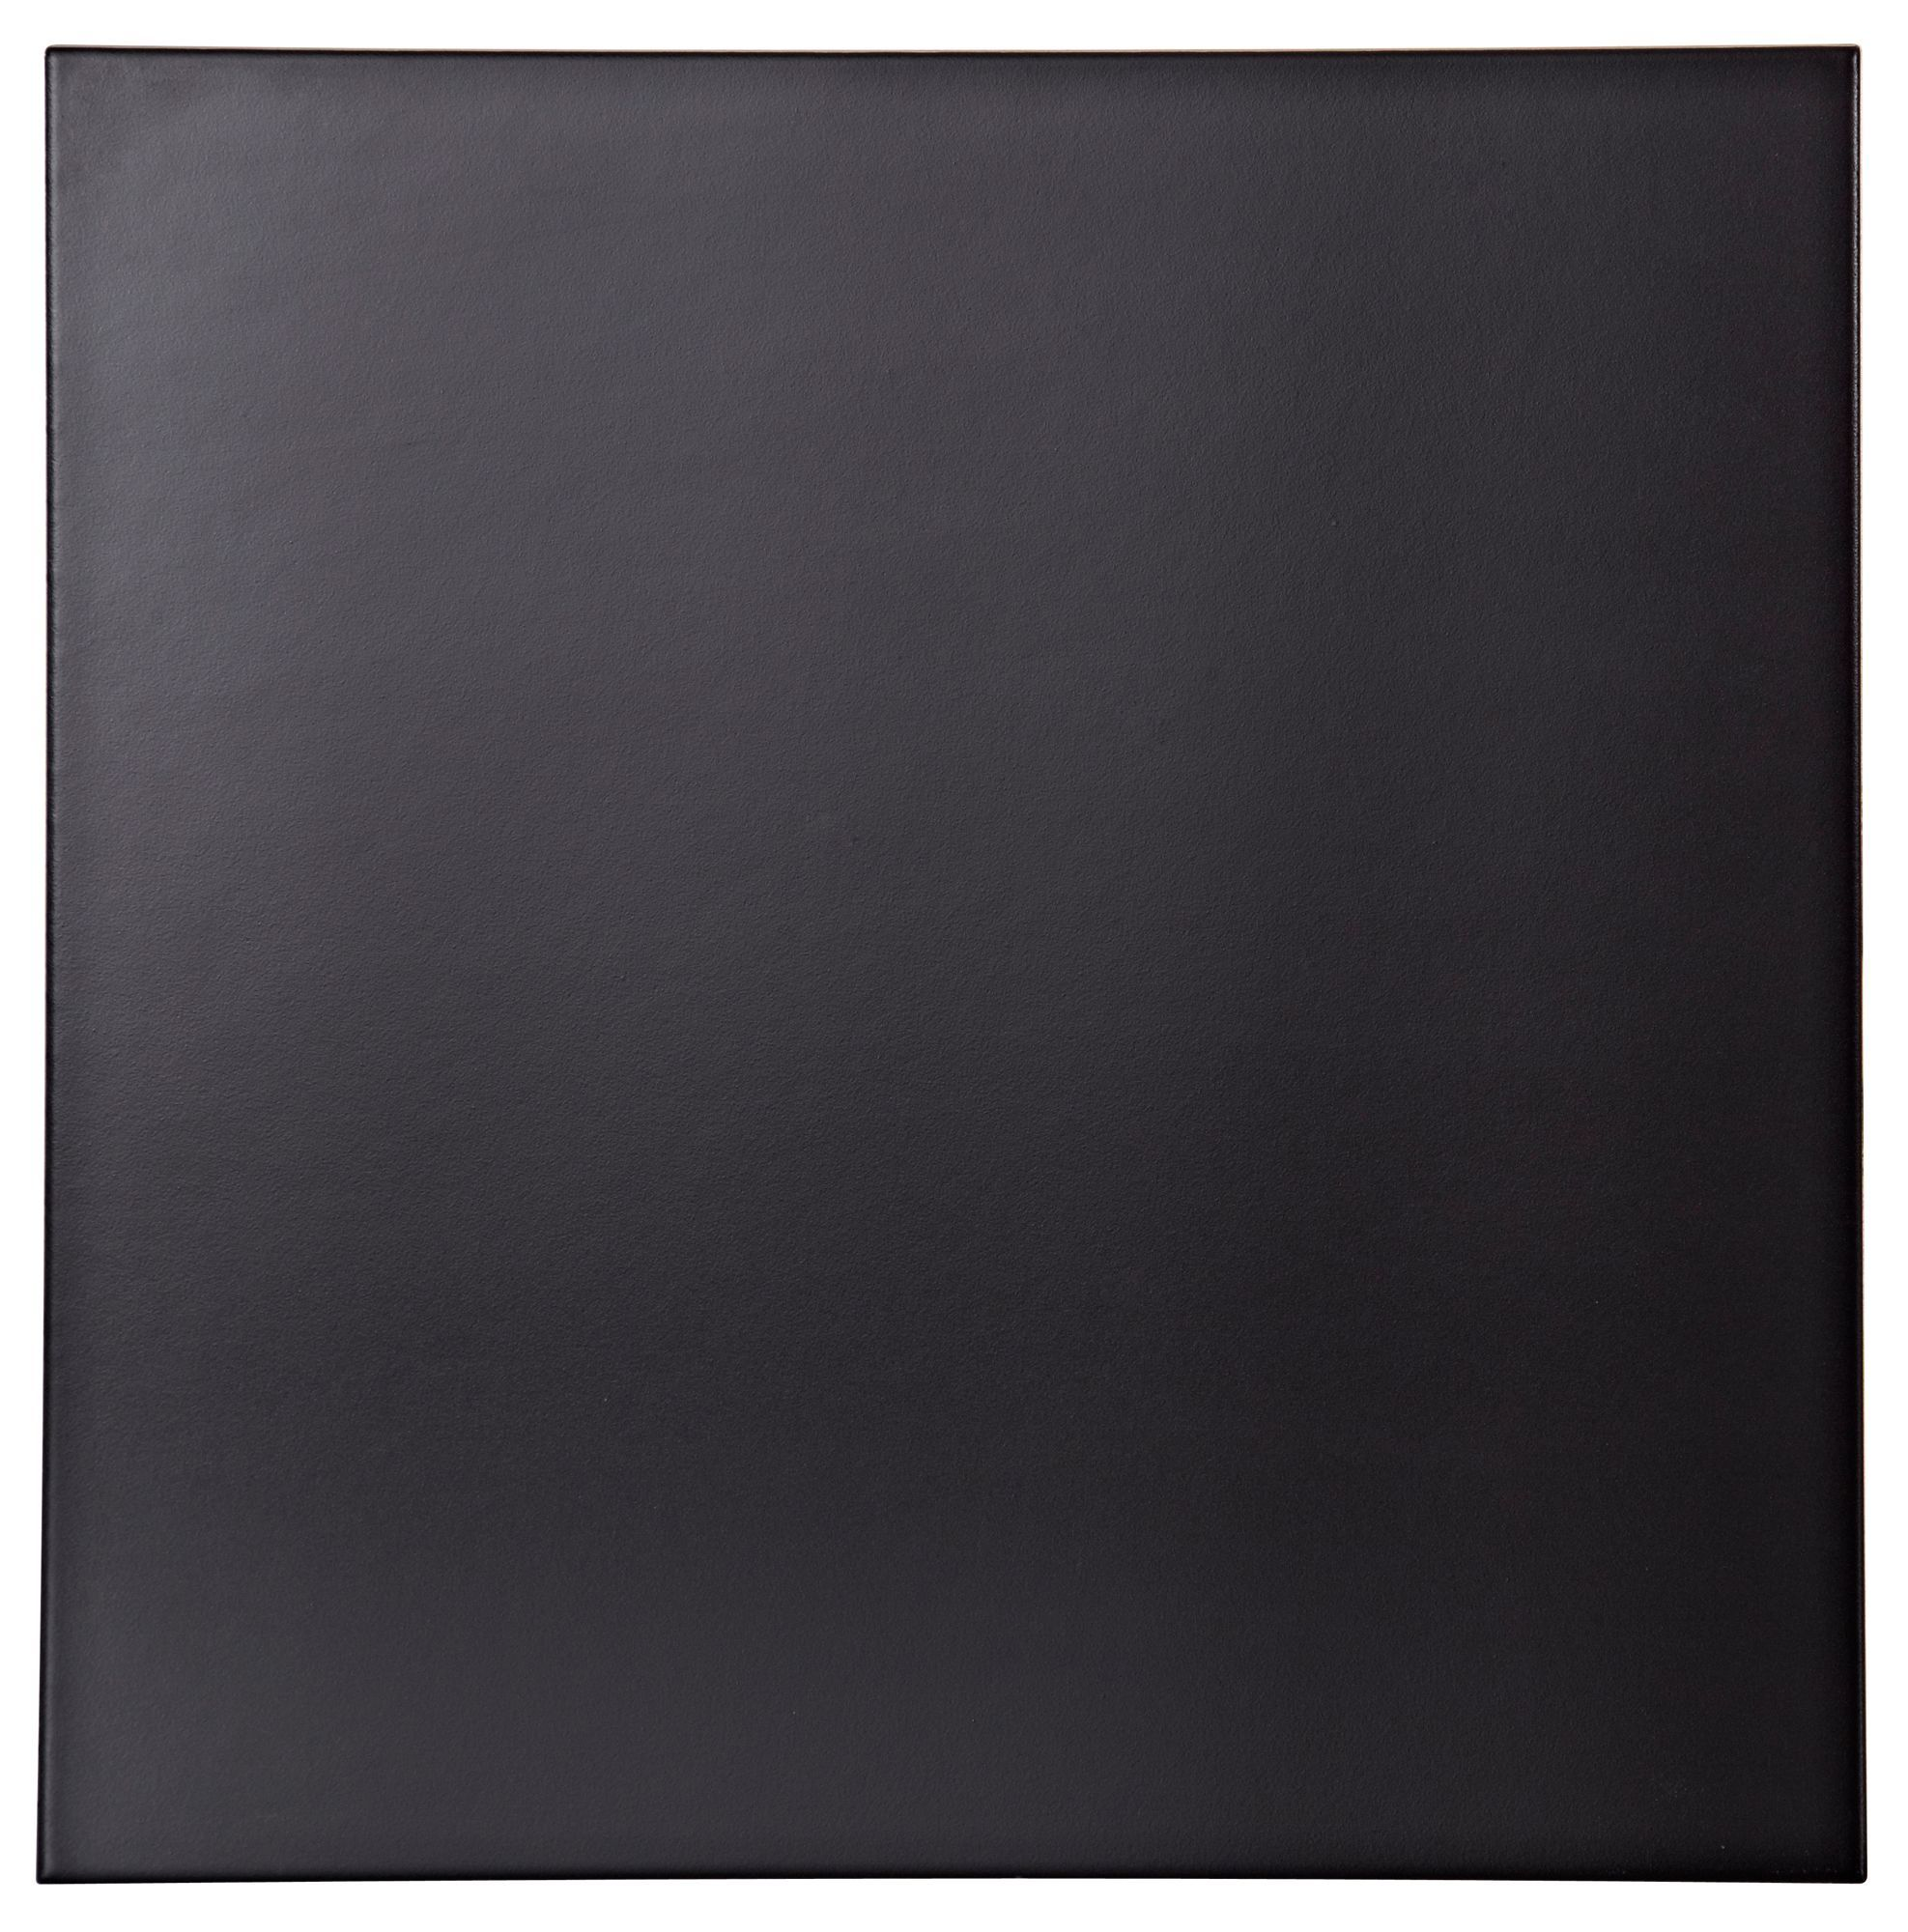 Umbria black porcelain floor tile pack of 9 l333mm w333mm umbria black porcelain floor tile pack of 9 l333mm w333mm departments diy at bq dailygadgetfo Choice Image